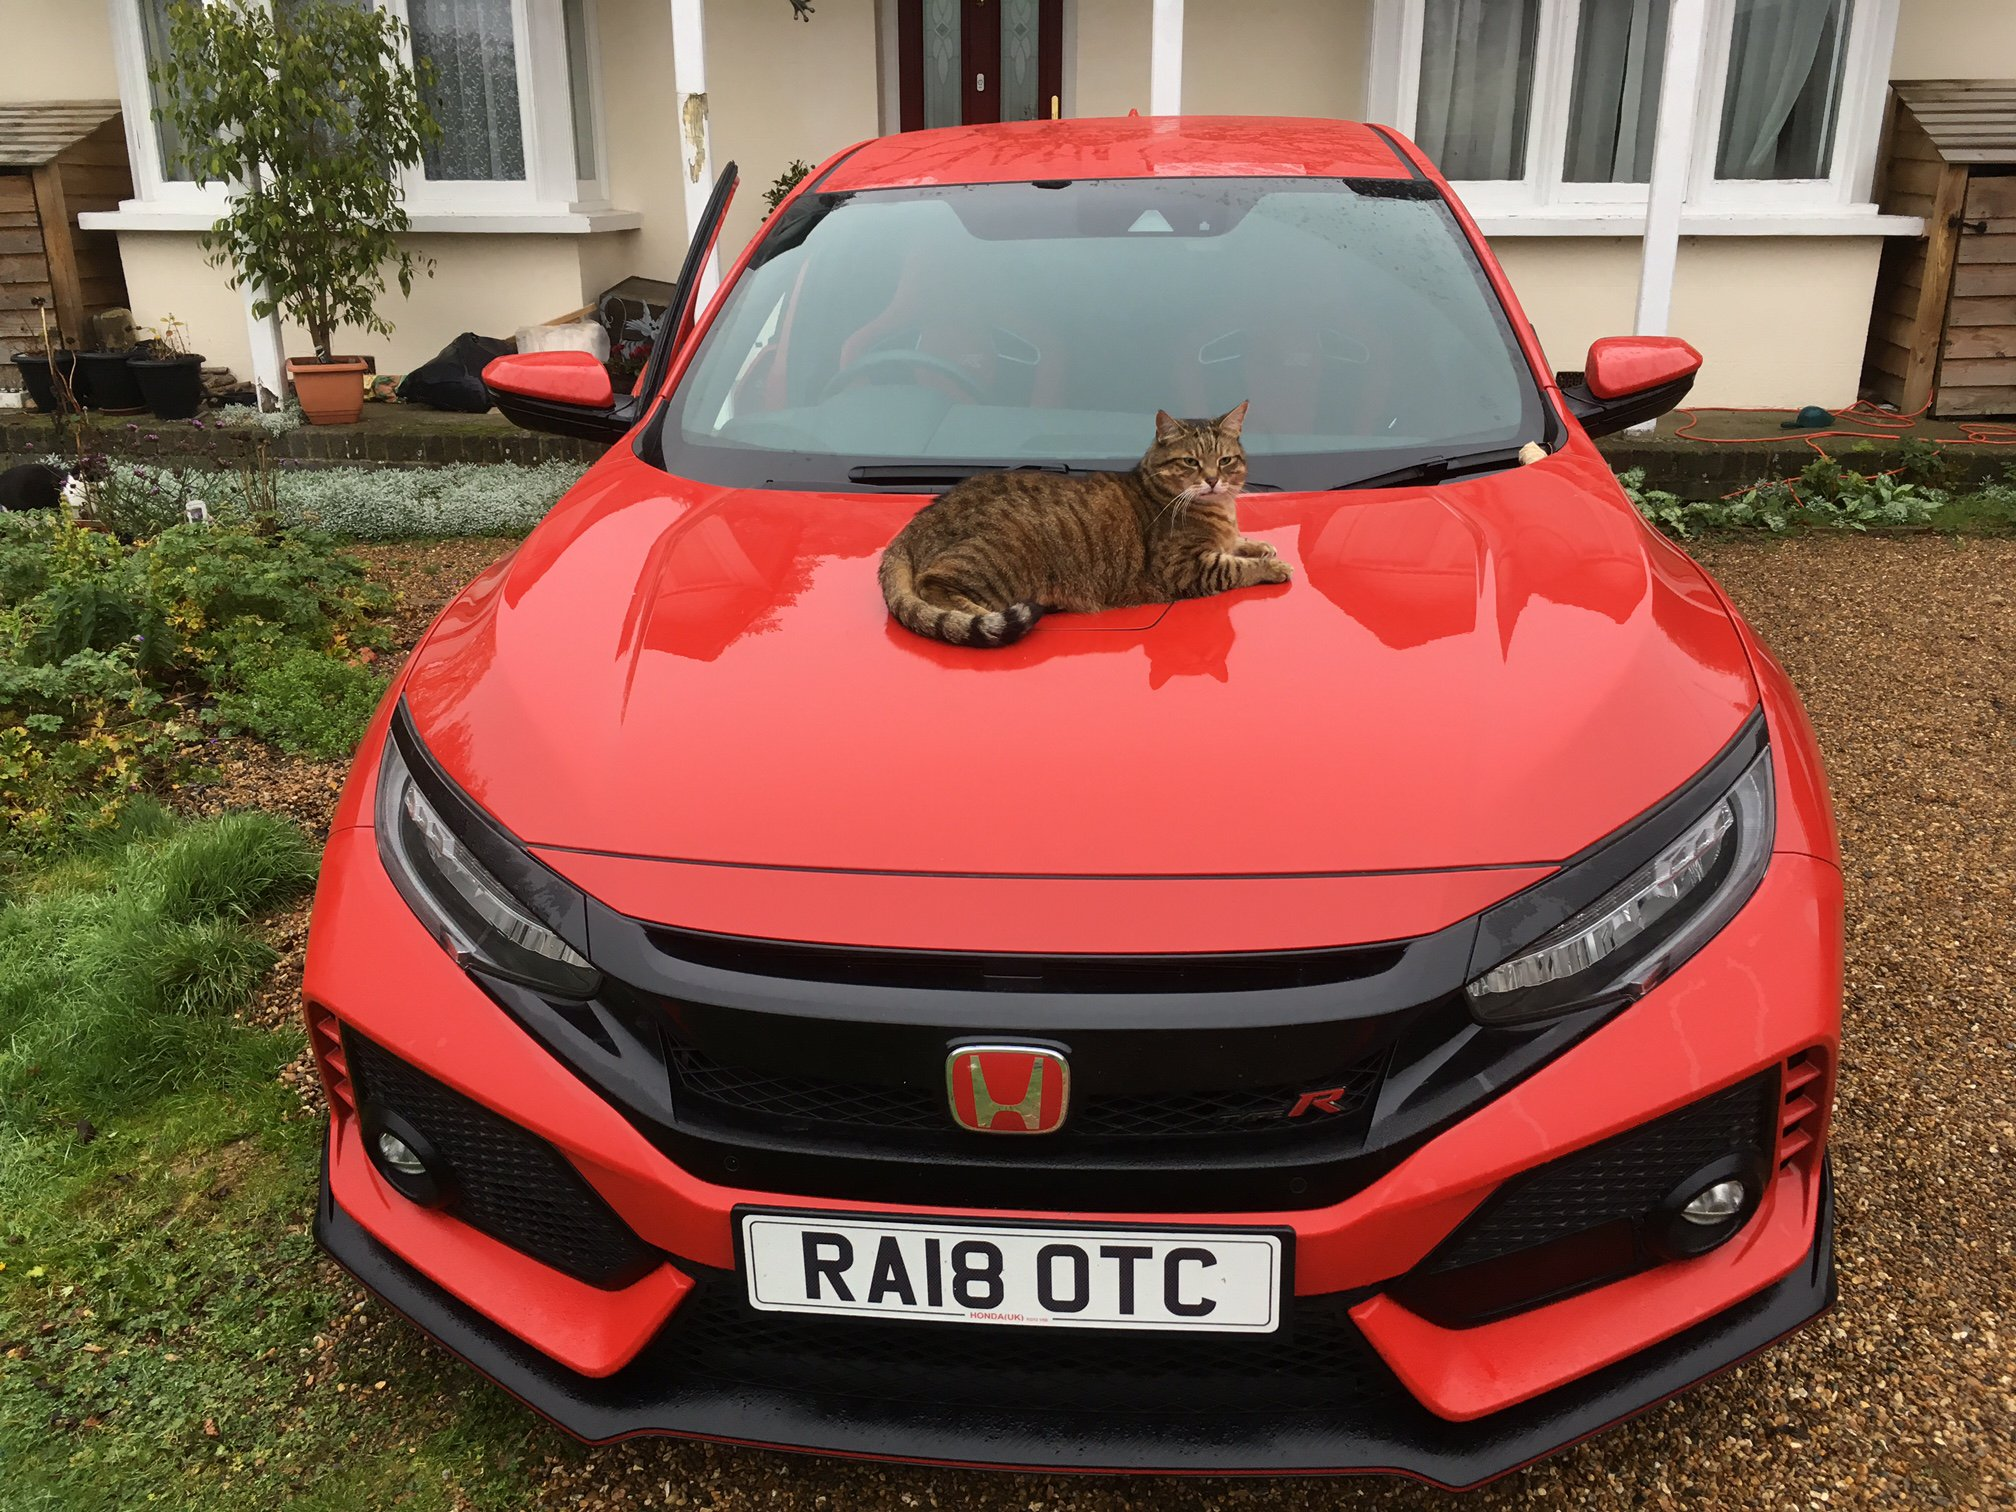 Honda Civic Type R long-termer with Willow 2